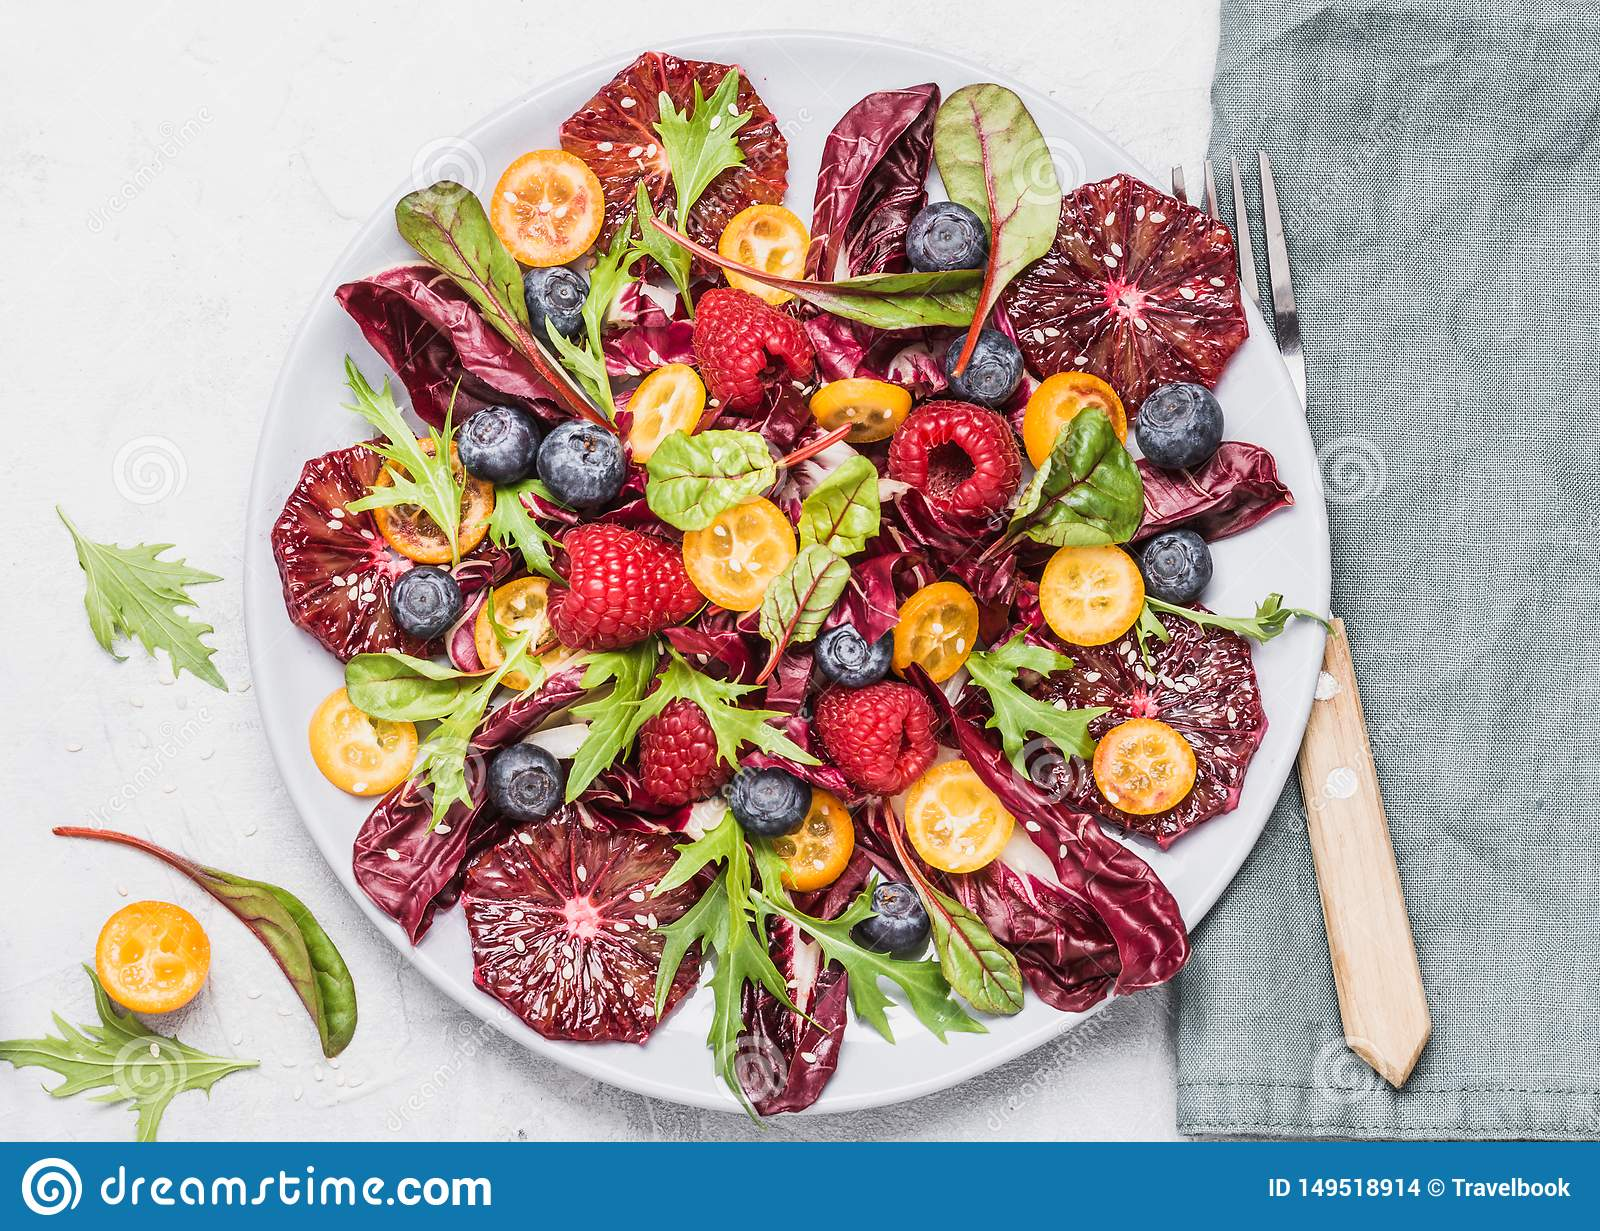 Salad plate with greens, oranges and berries top view. Healthy raw food concept.